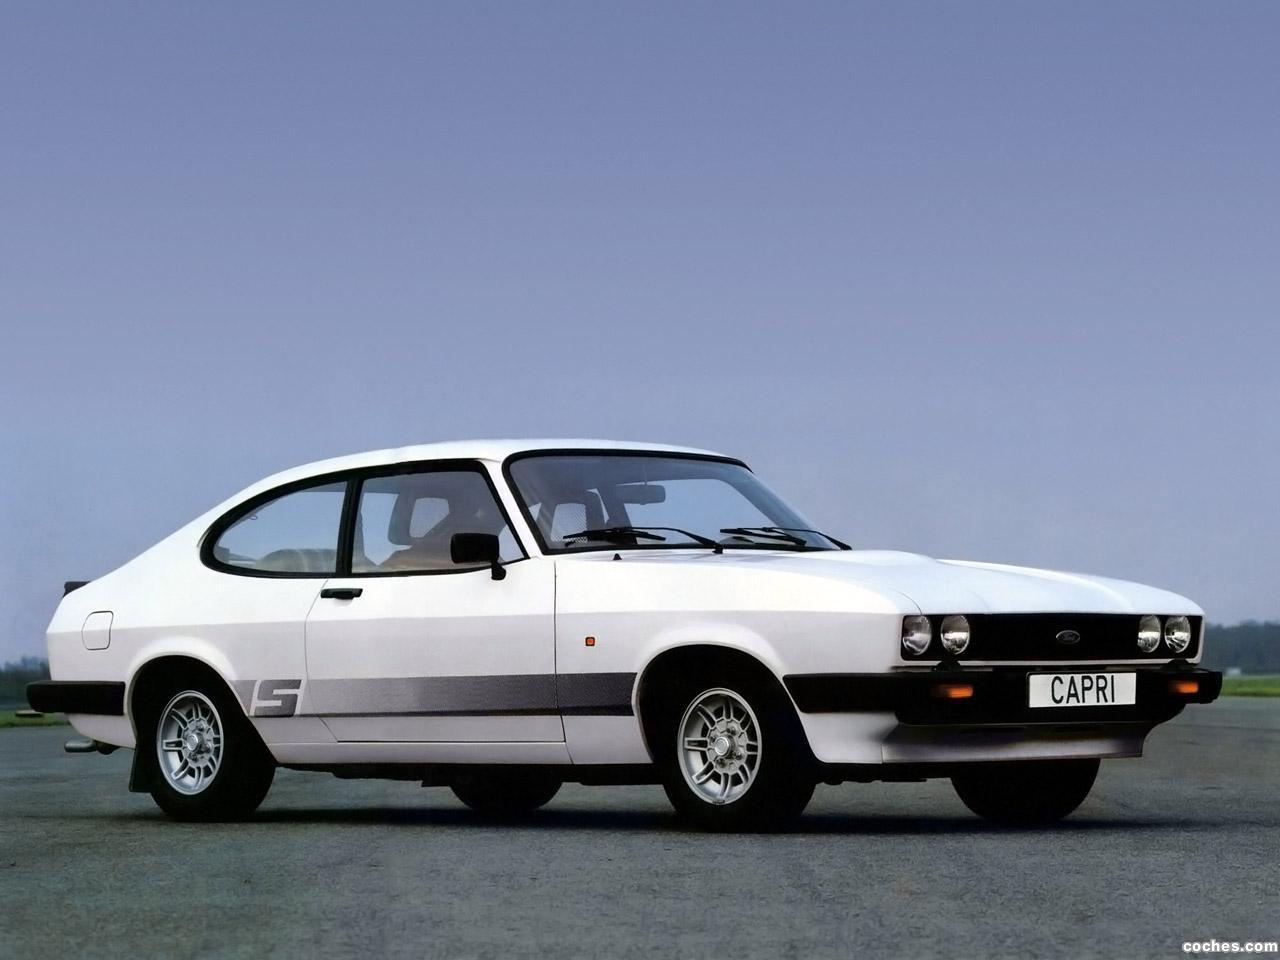 Ford capri 1987 photo - 3